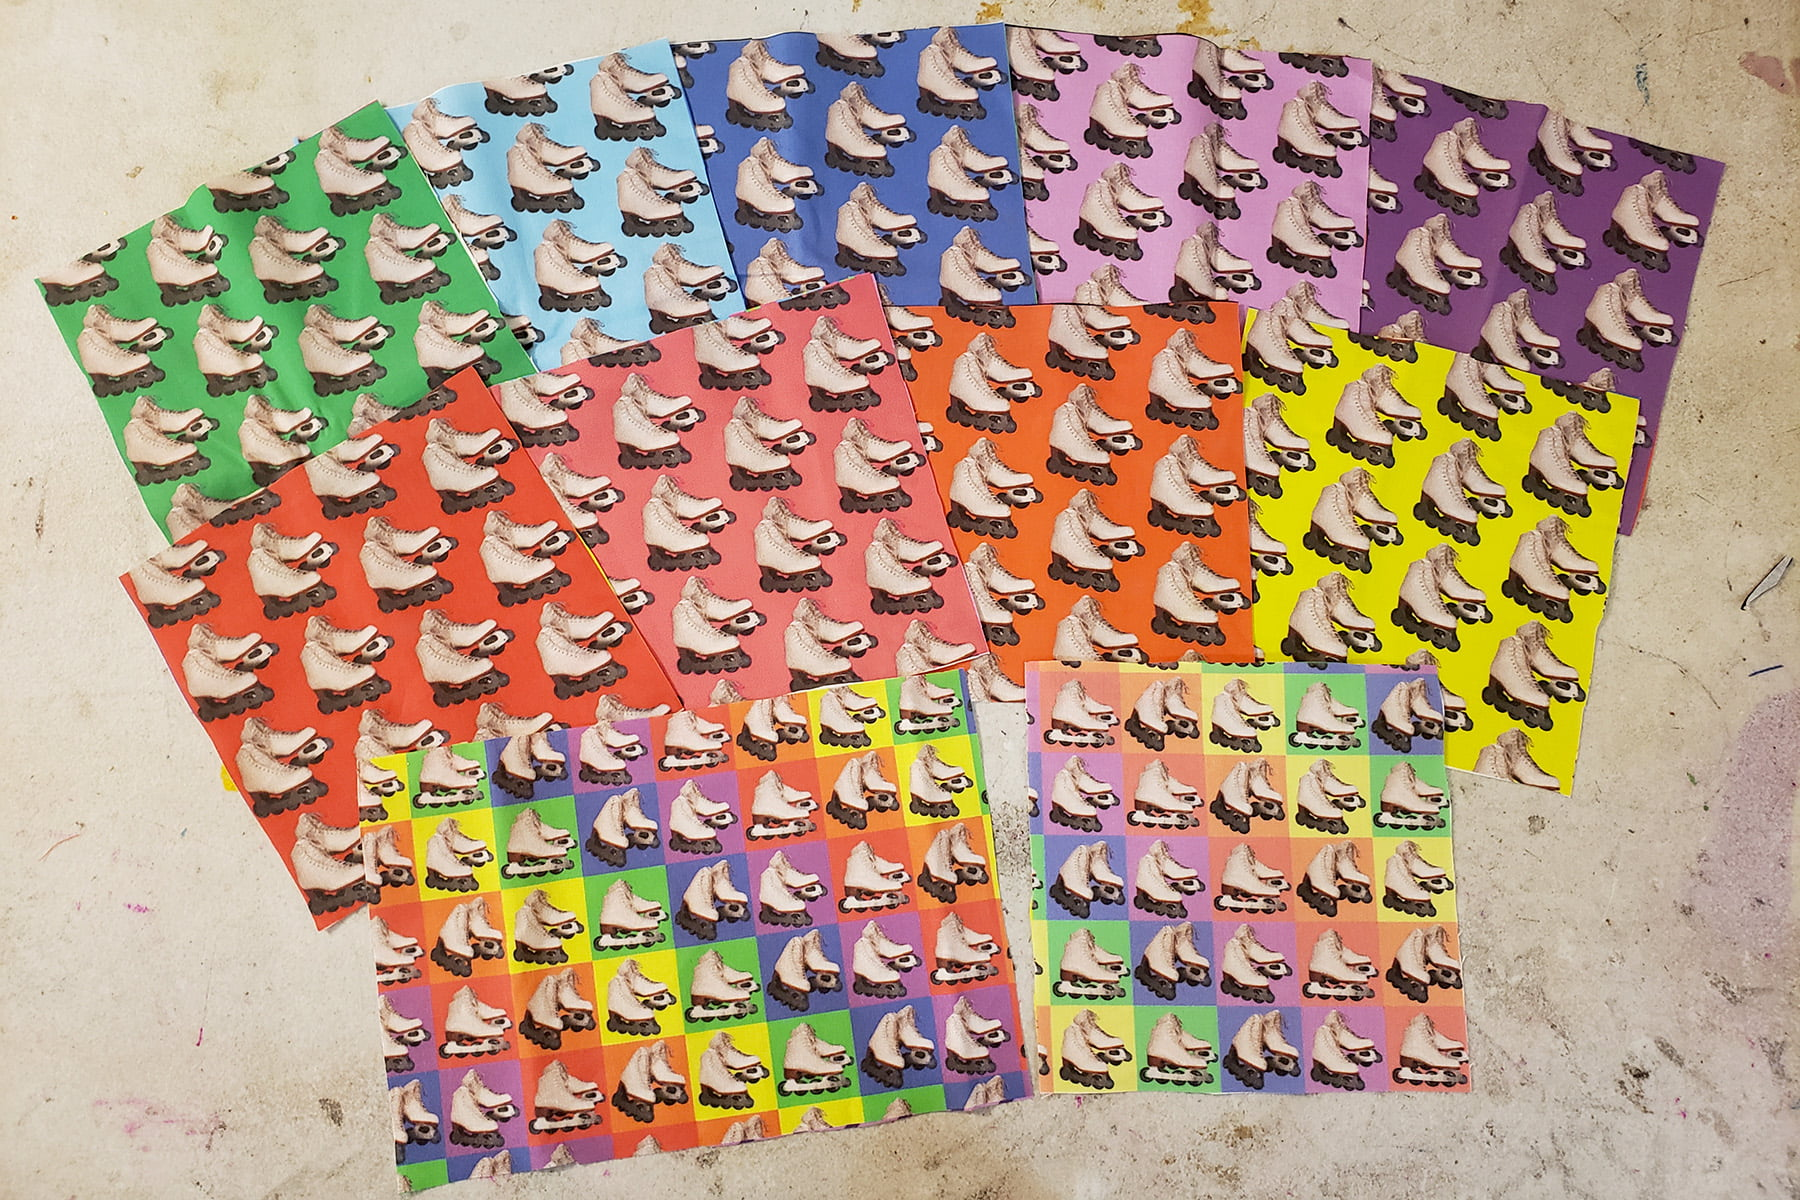 Photo of a selection of fabrics featuring inline figure skates on a variety of colourful backgrounds.